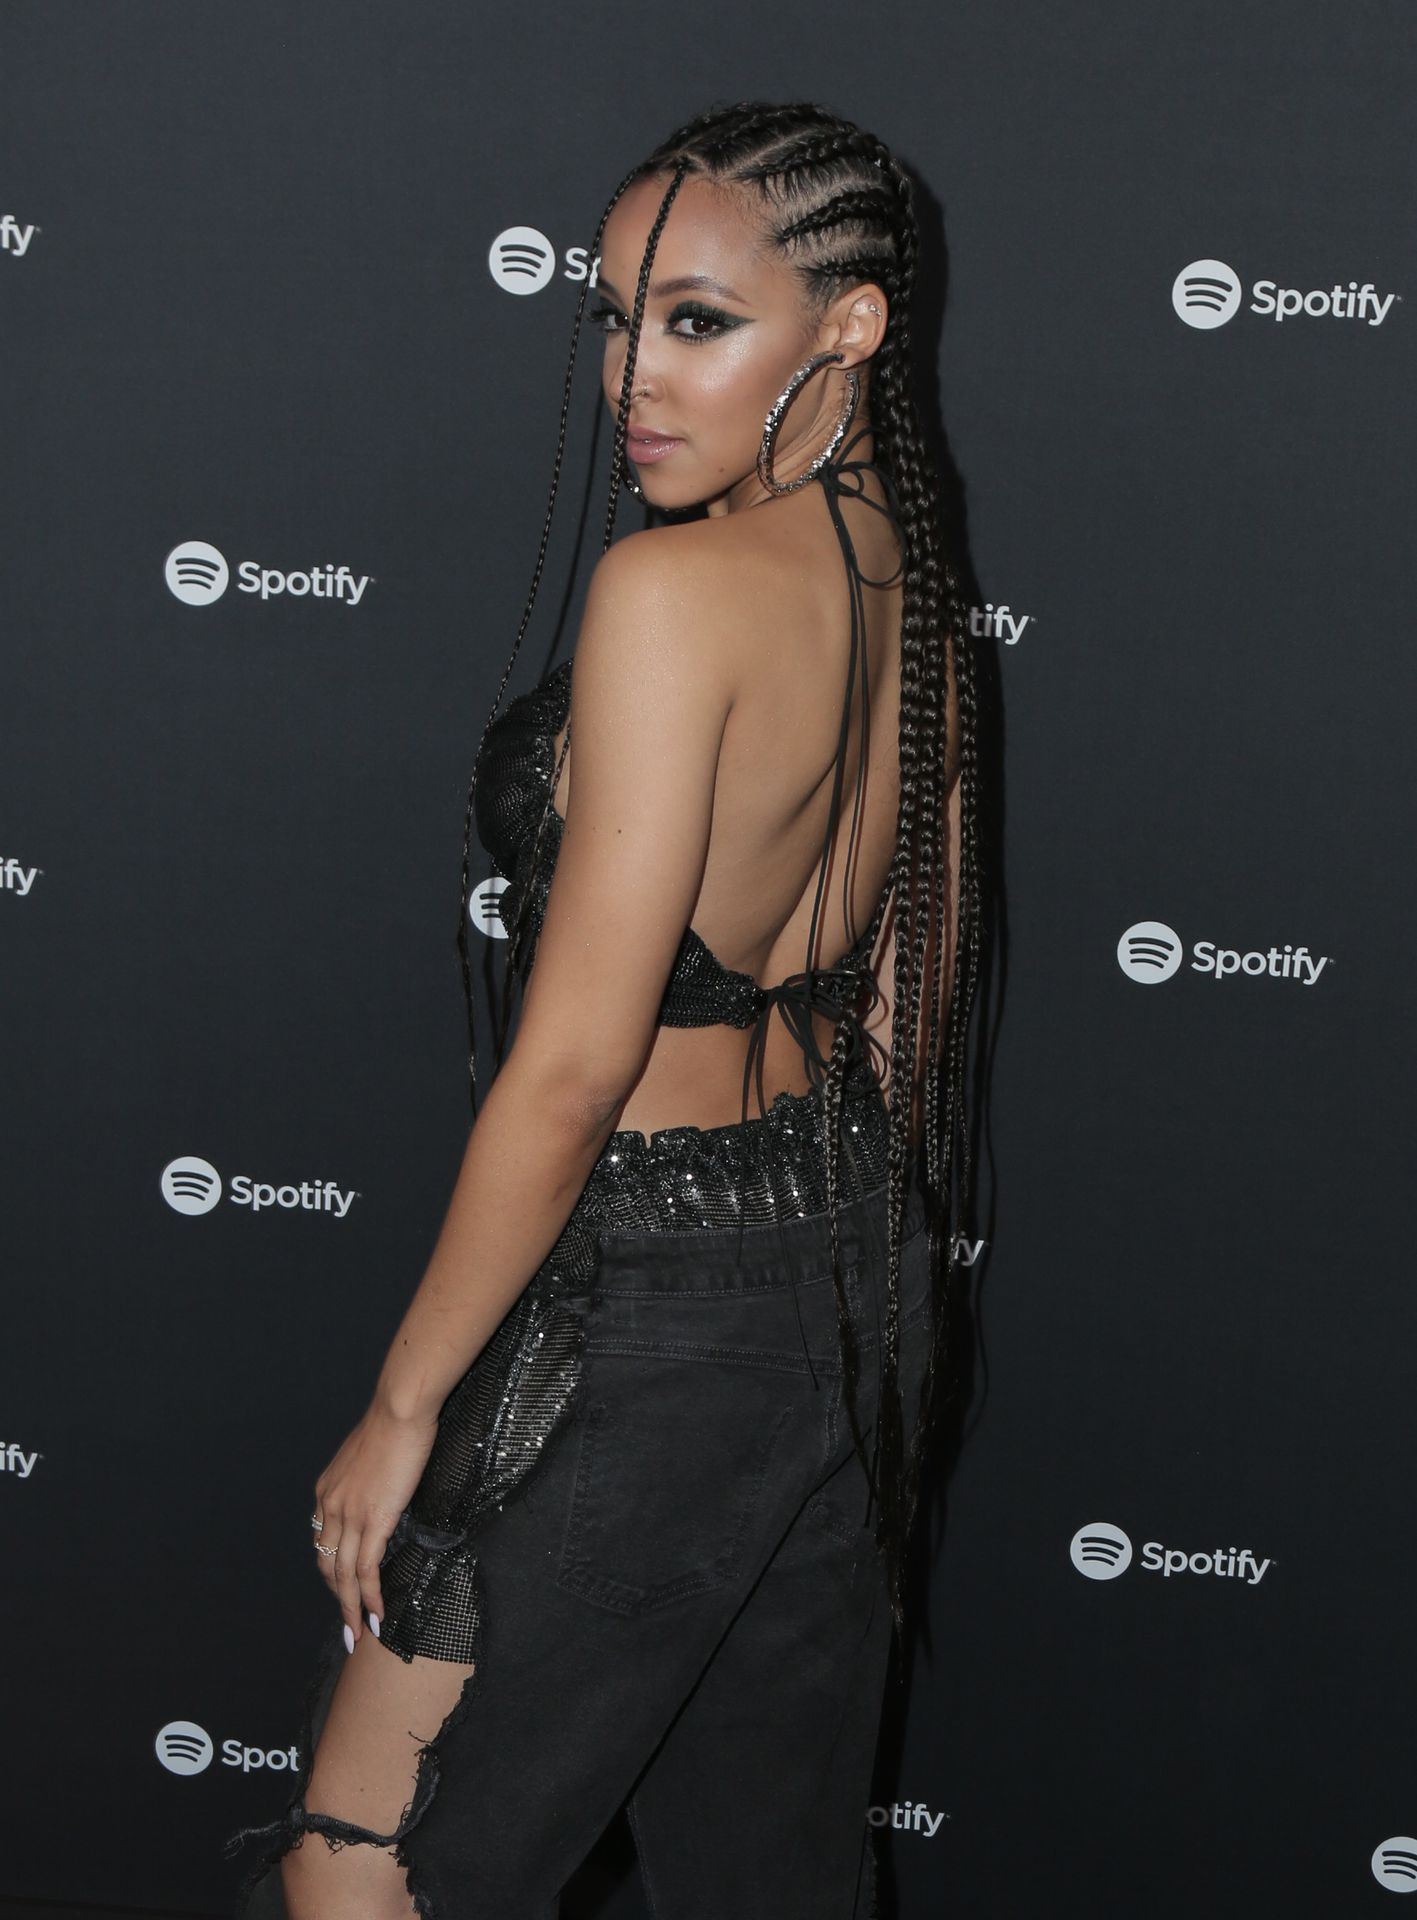 Tinashe Flaunts Her Tits At The Spotify Best New Artist Party 0029